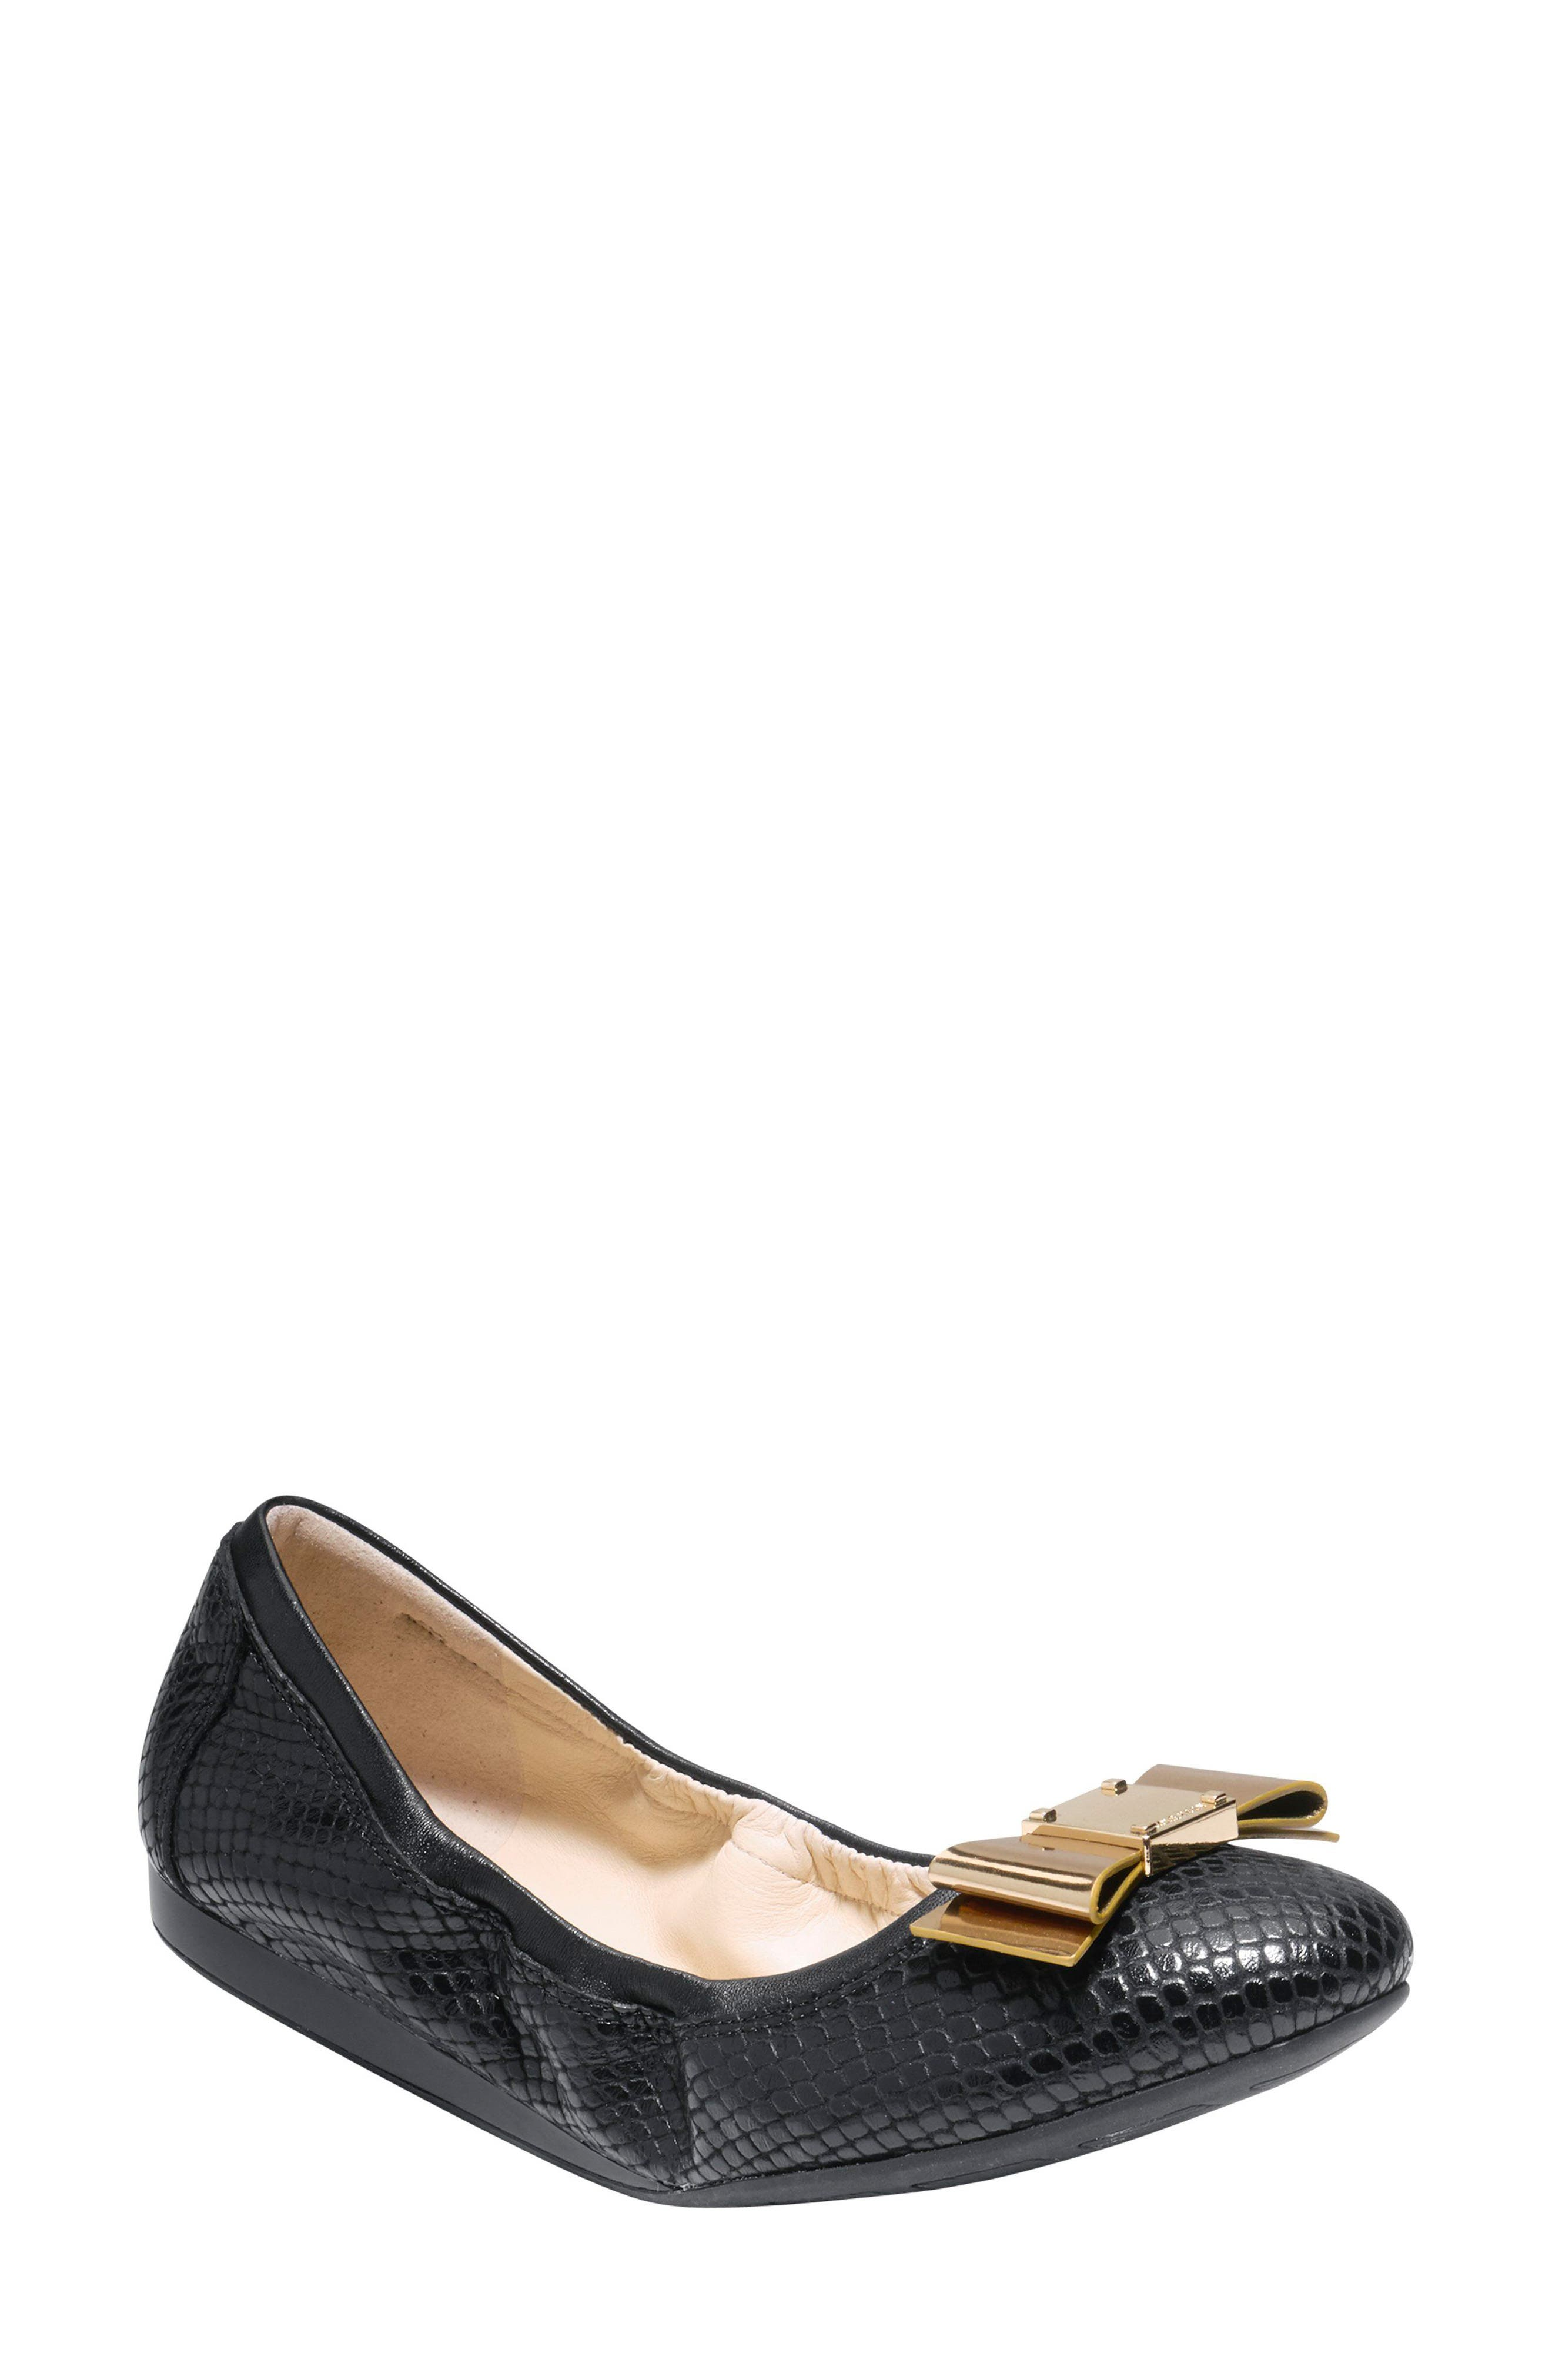 Alternate Image 1 Selected - Cole Haan 'Tali' Bow Ballet Flat (Women)